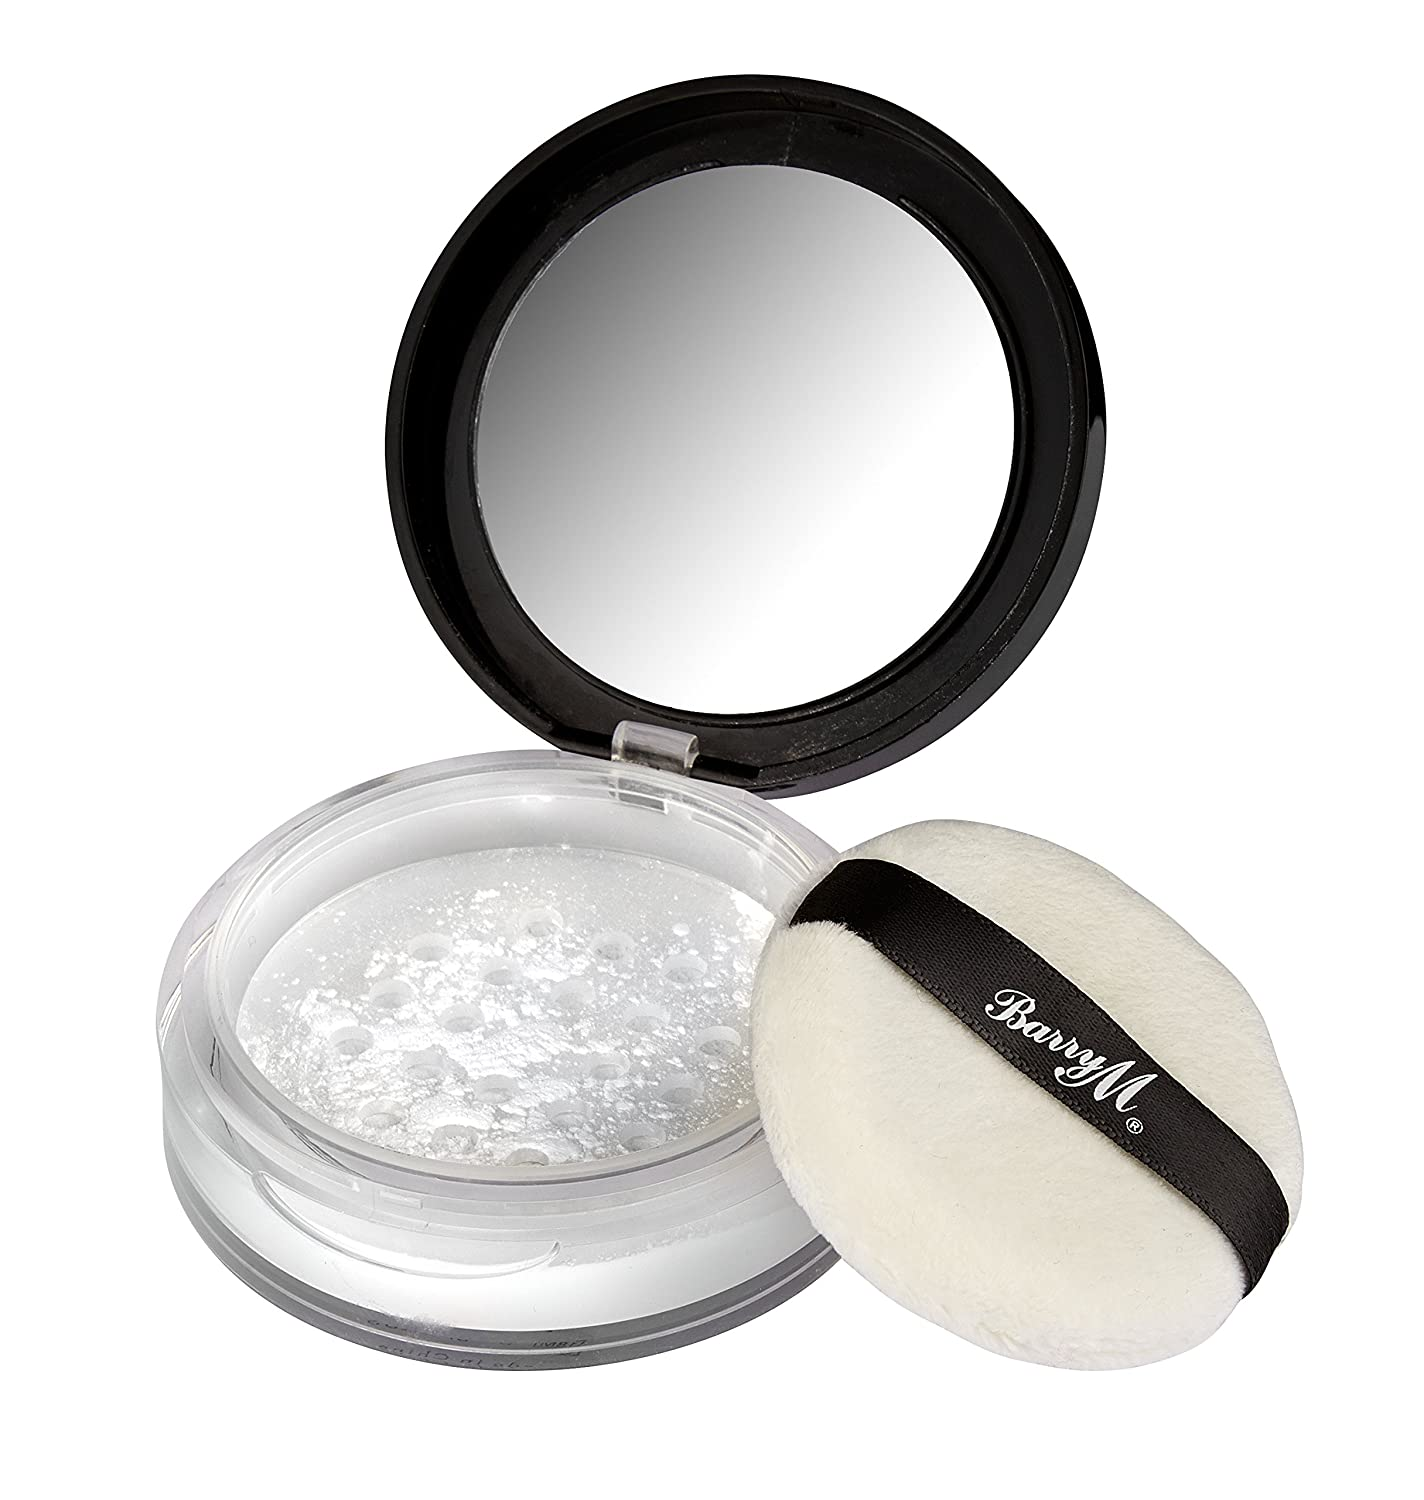 Barry M Cosmetics Ready Set Smooth Loose Setting Powder BMBE4 F-LRSS